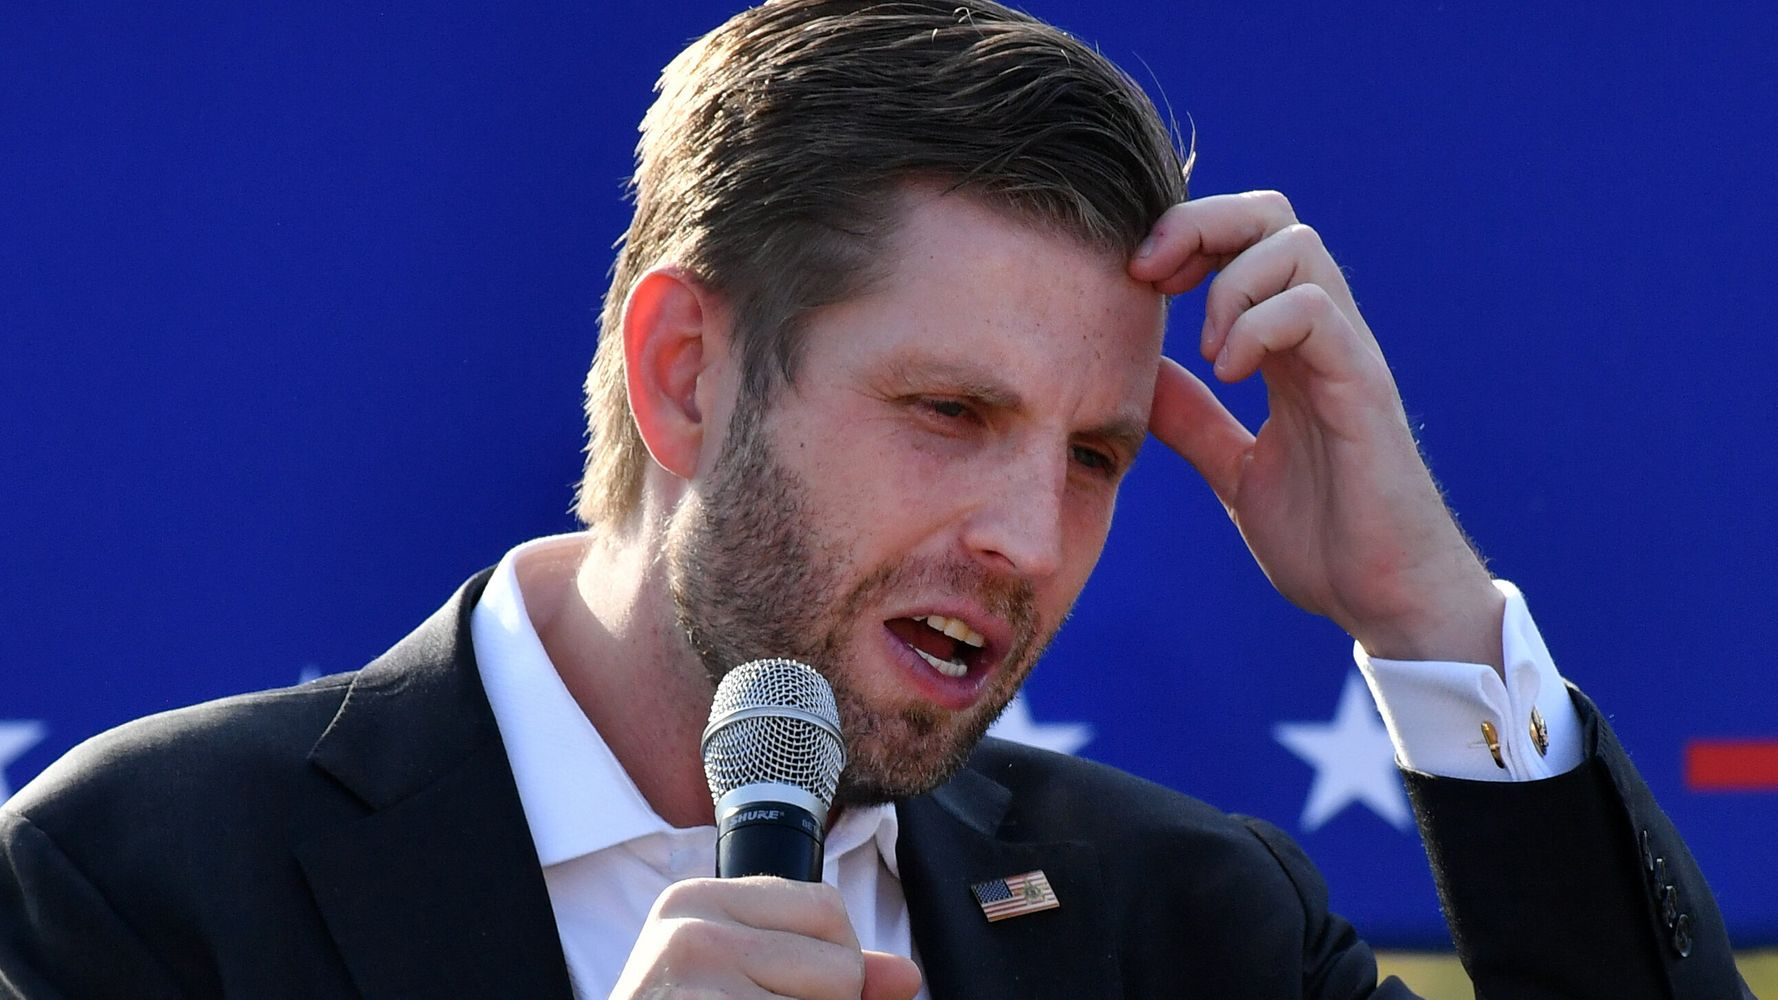 Eric Trump Asks Question About His Dad, Gets The Same Stinging Response